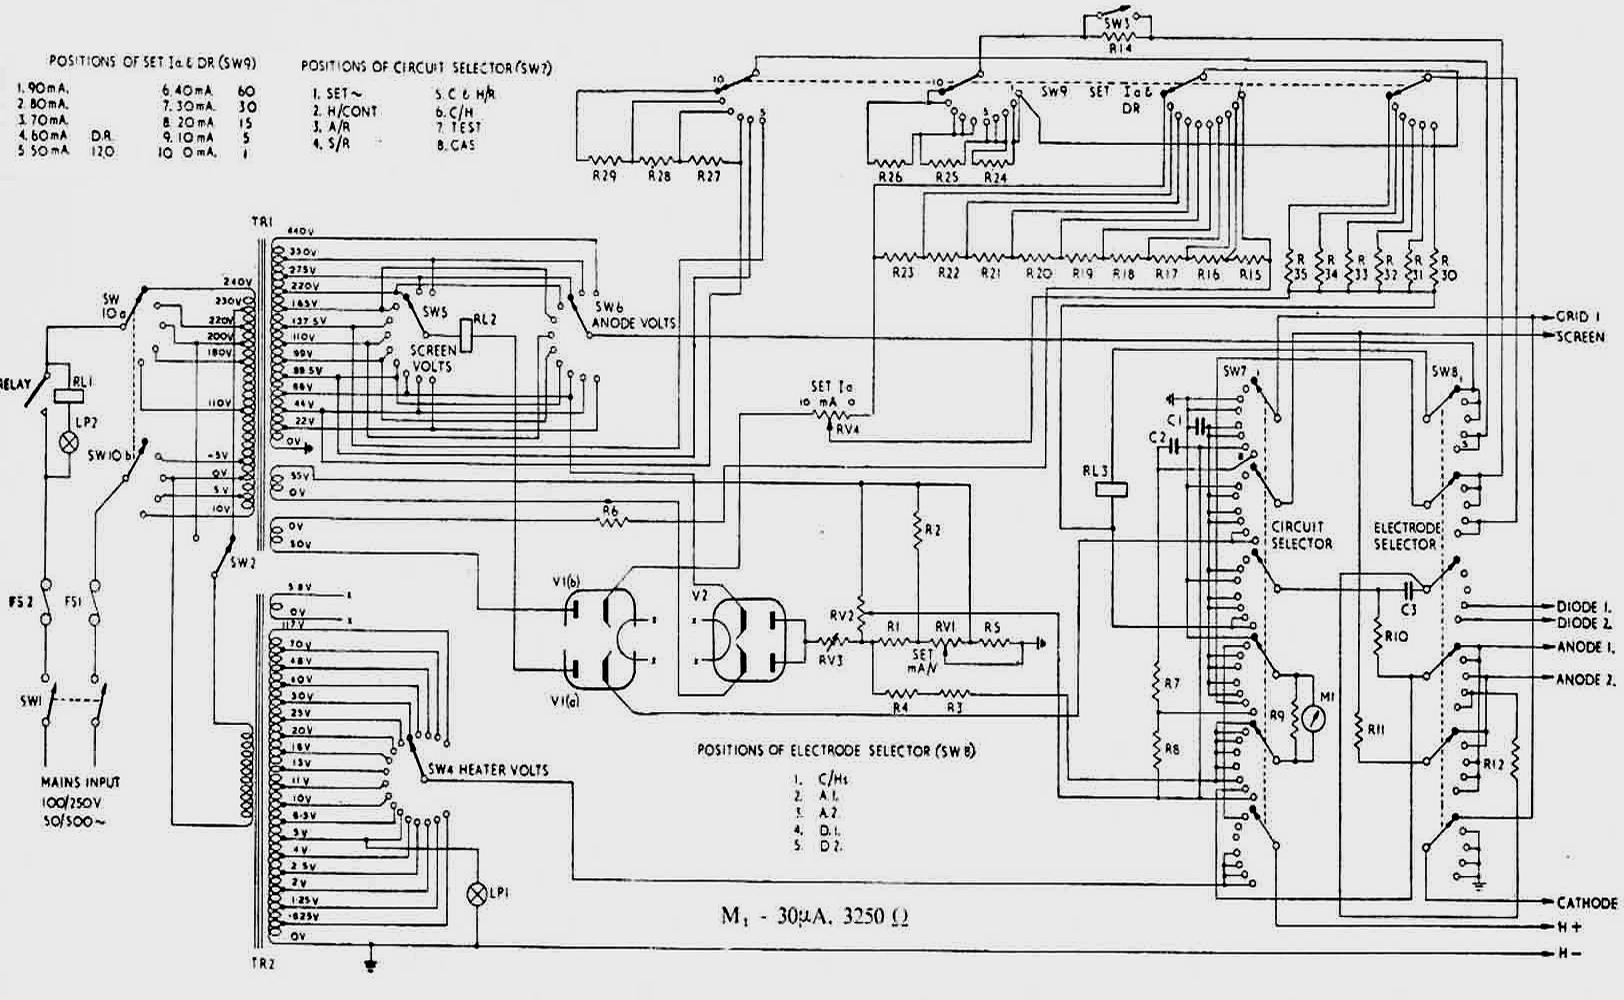 C Ee A F Hi Res in addition Terex Crane Ac Ac L Wiring Diagram furthermore Maxresdefault also Sr Tltgts Wiring further Figure. on ac schematic diagram